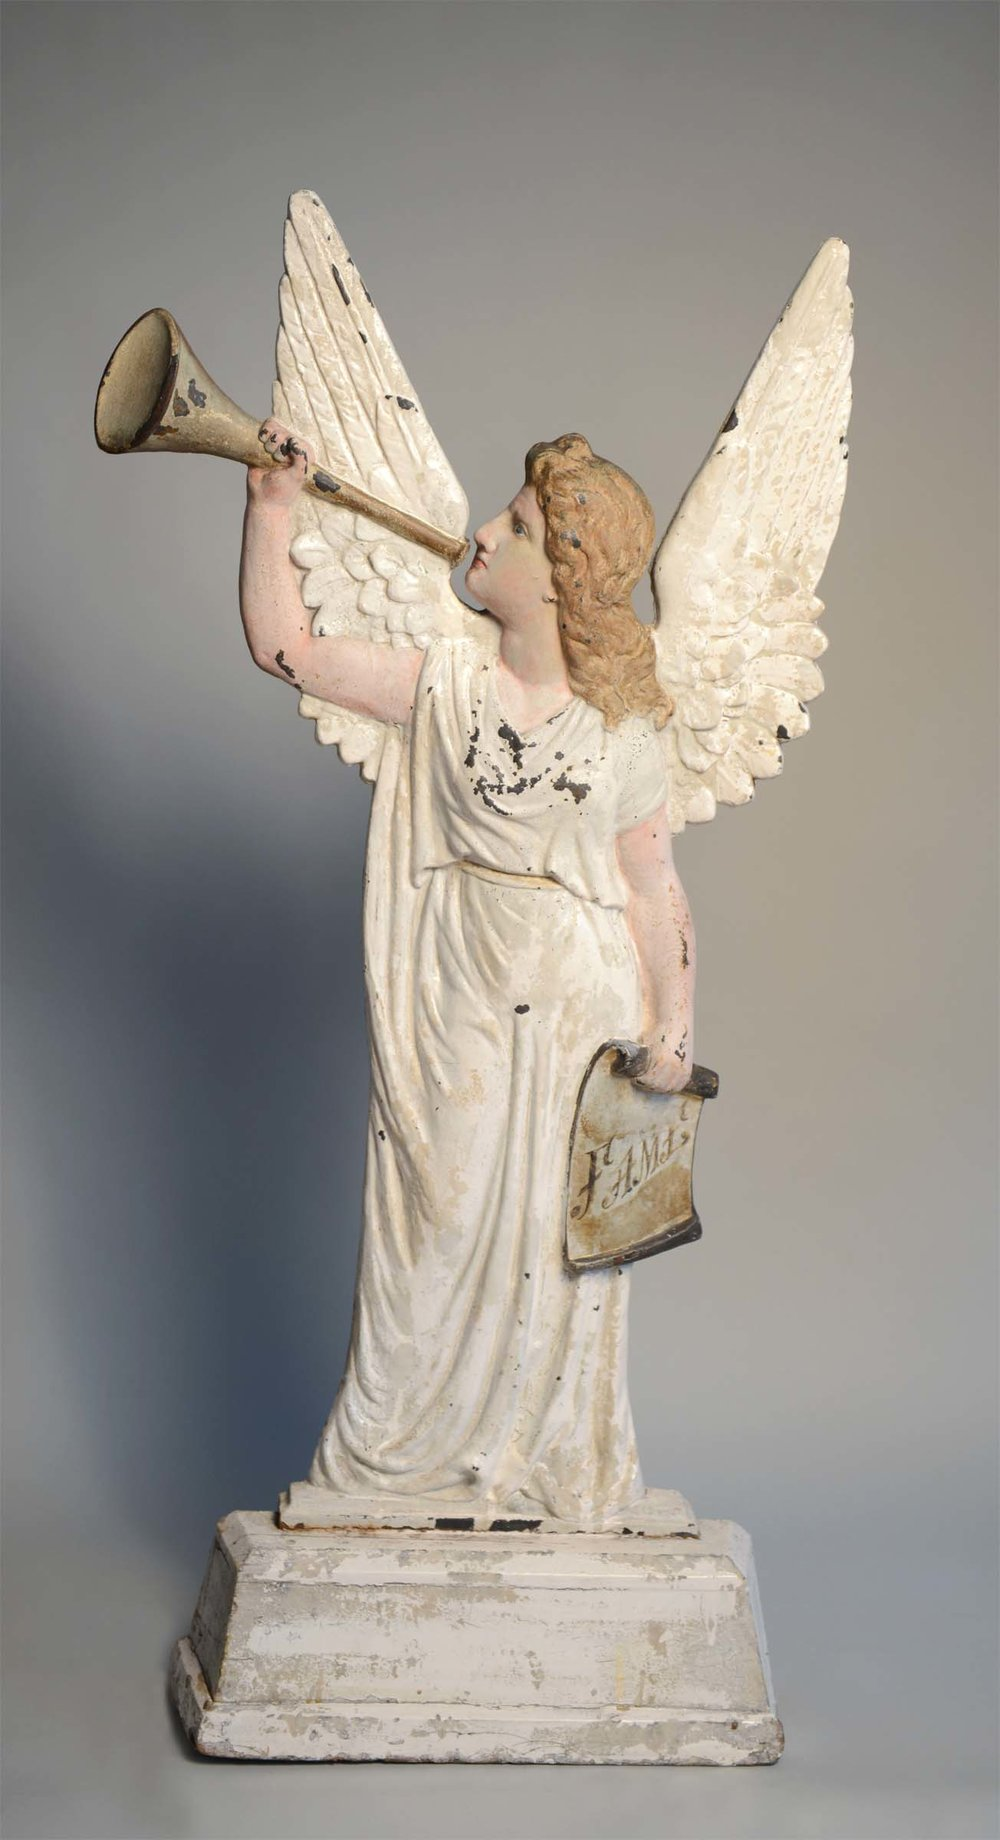 Anonymous, American,  Standing Figure of Fame,  c. 1875, cast iron with old paint, 40h x 30w x 4d in.